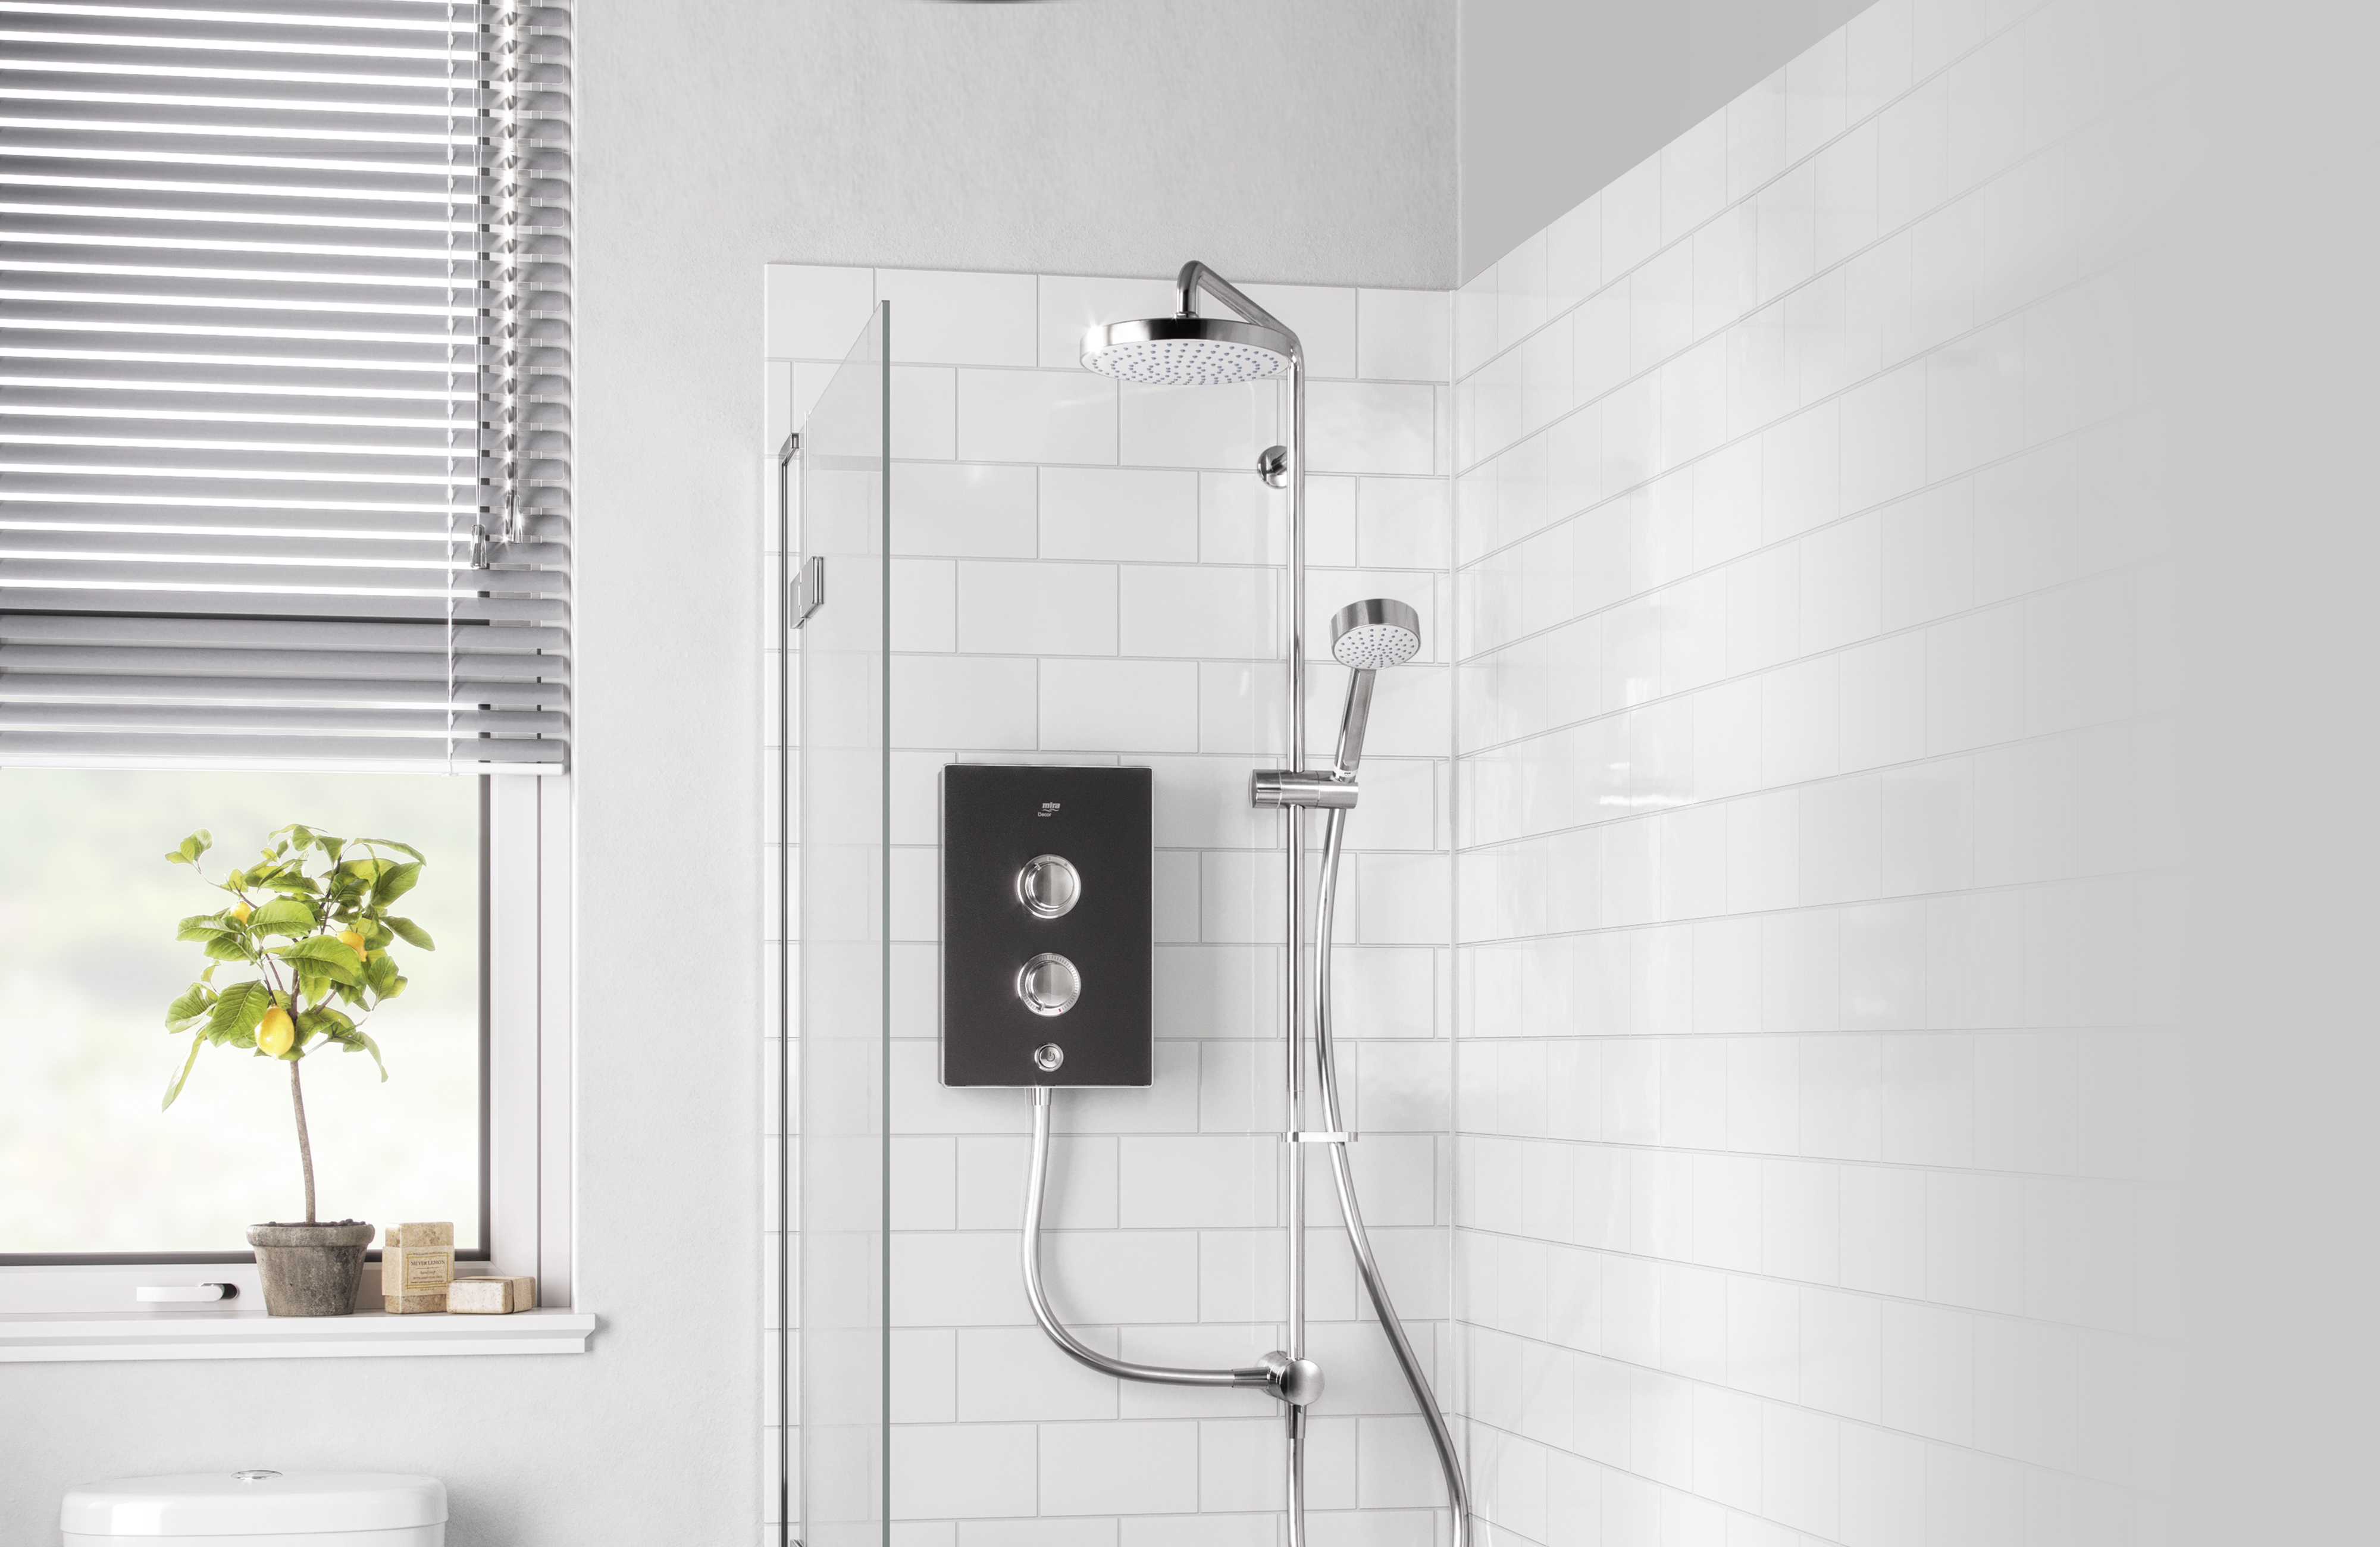 Mira Decor Dual Shower in white tiled bathroom